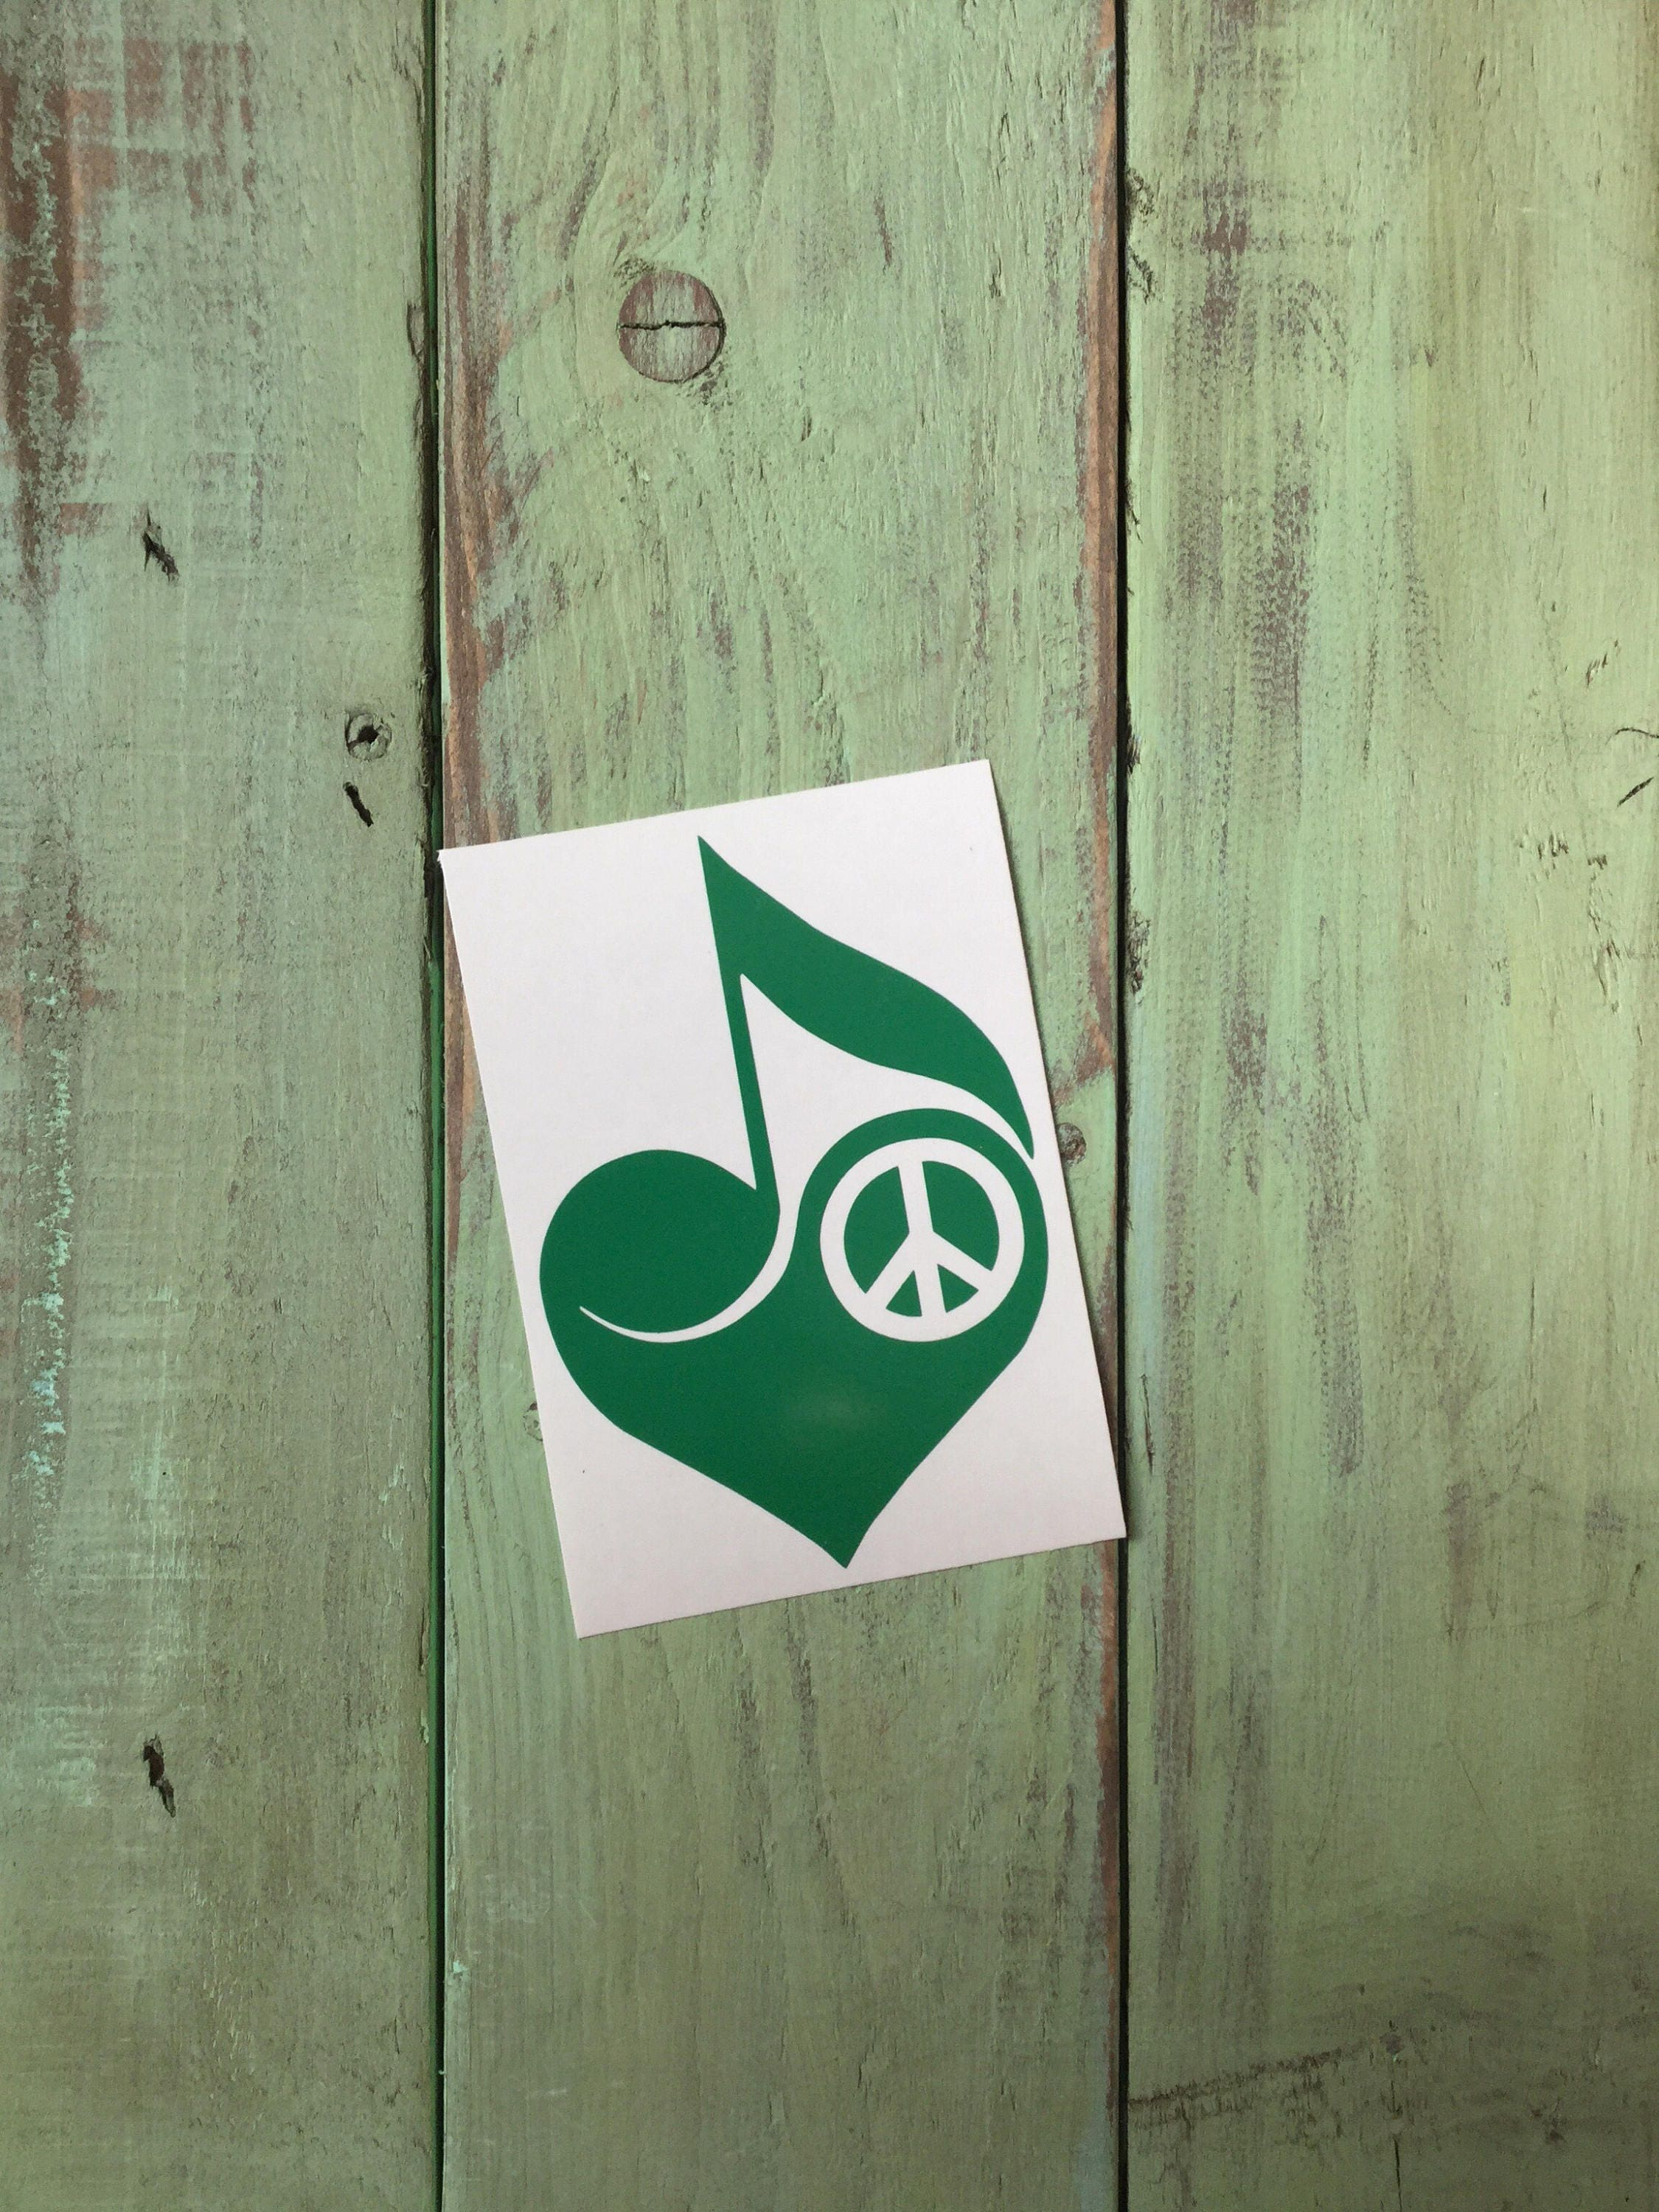 Heart Peace Music Vinyl Decal Sticker - Custom vinyl decals minnesota